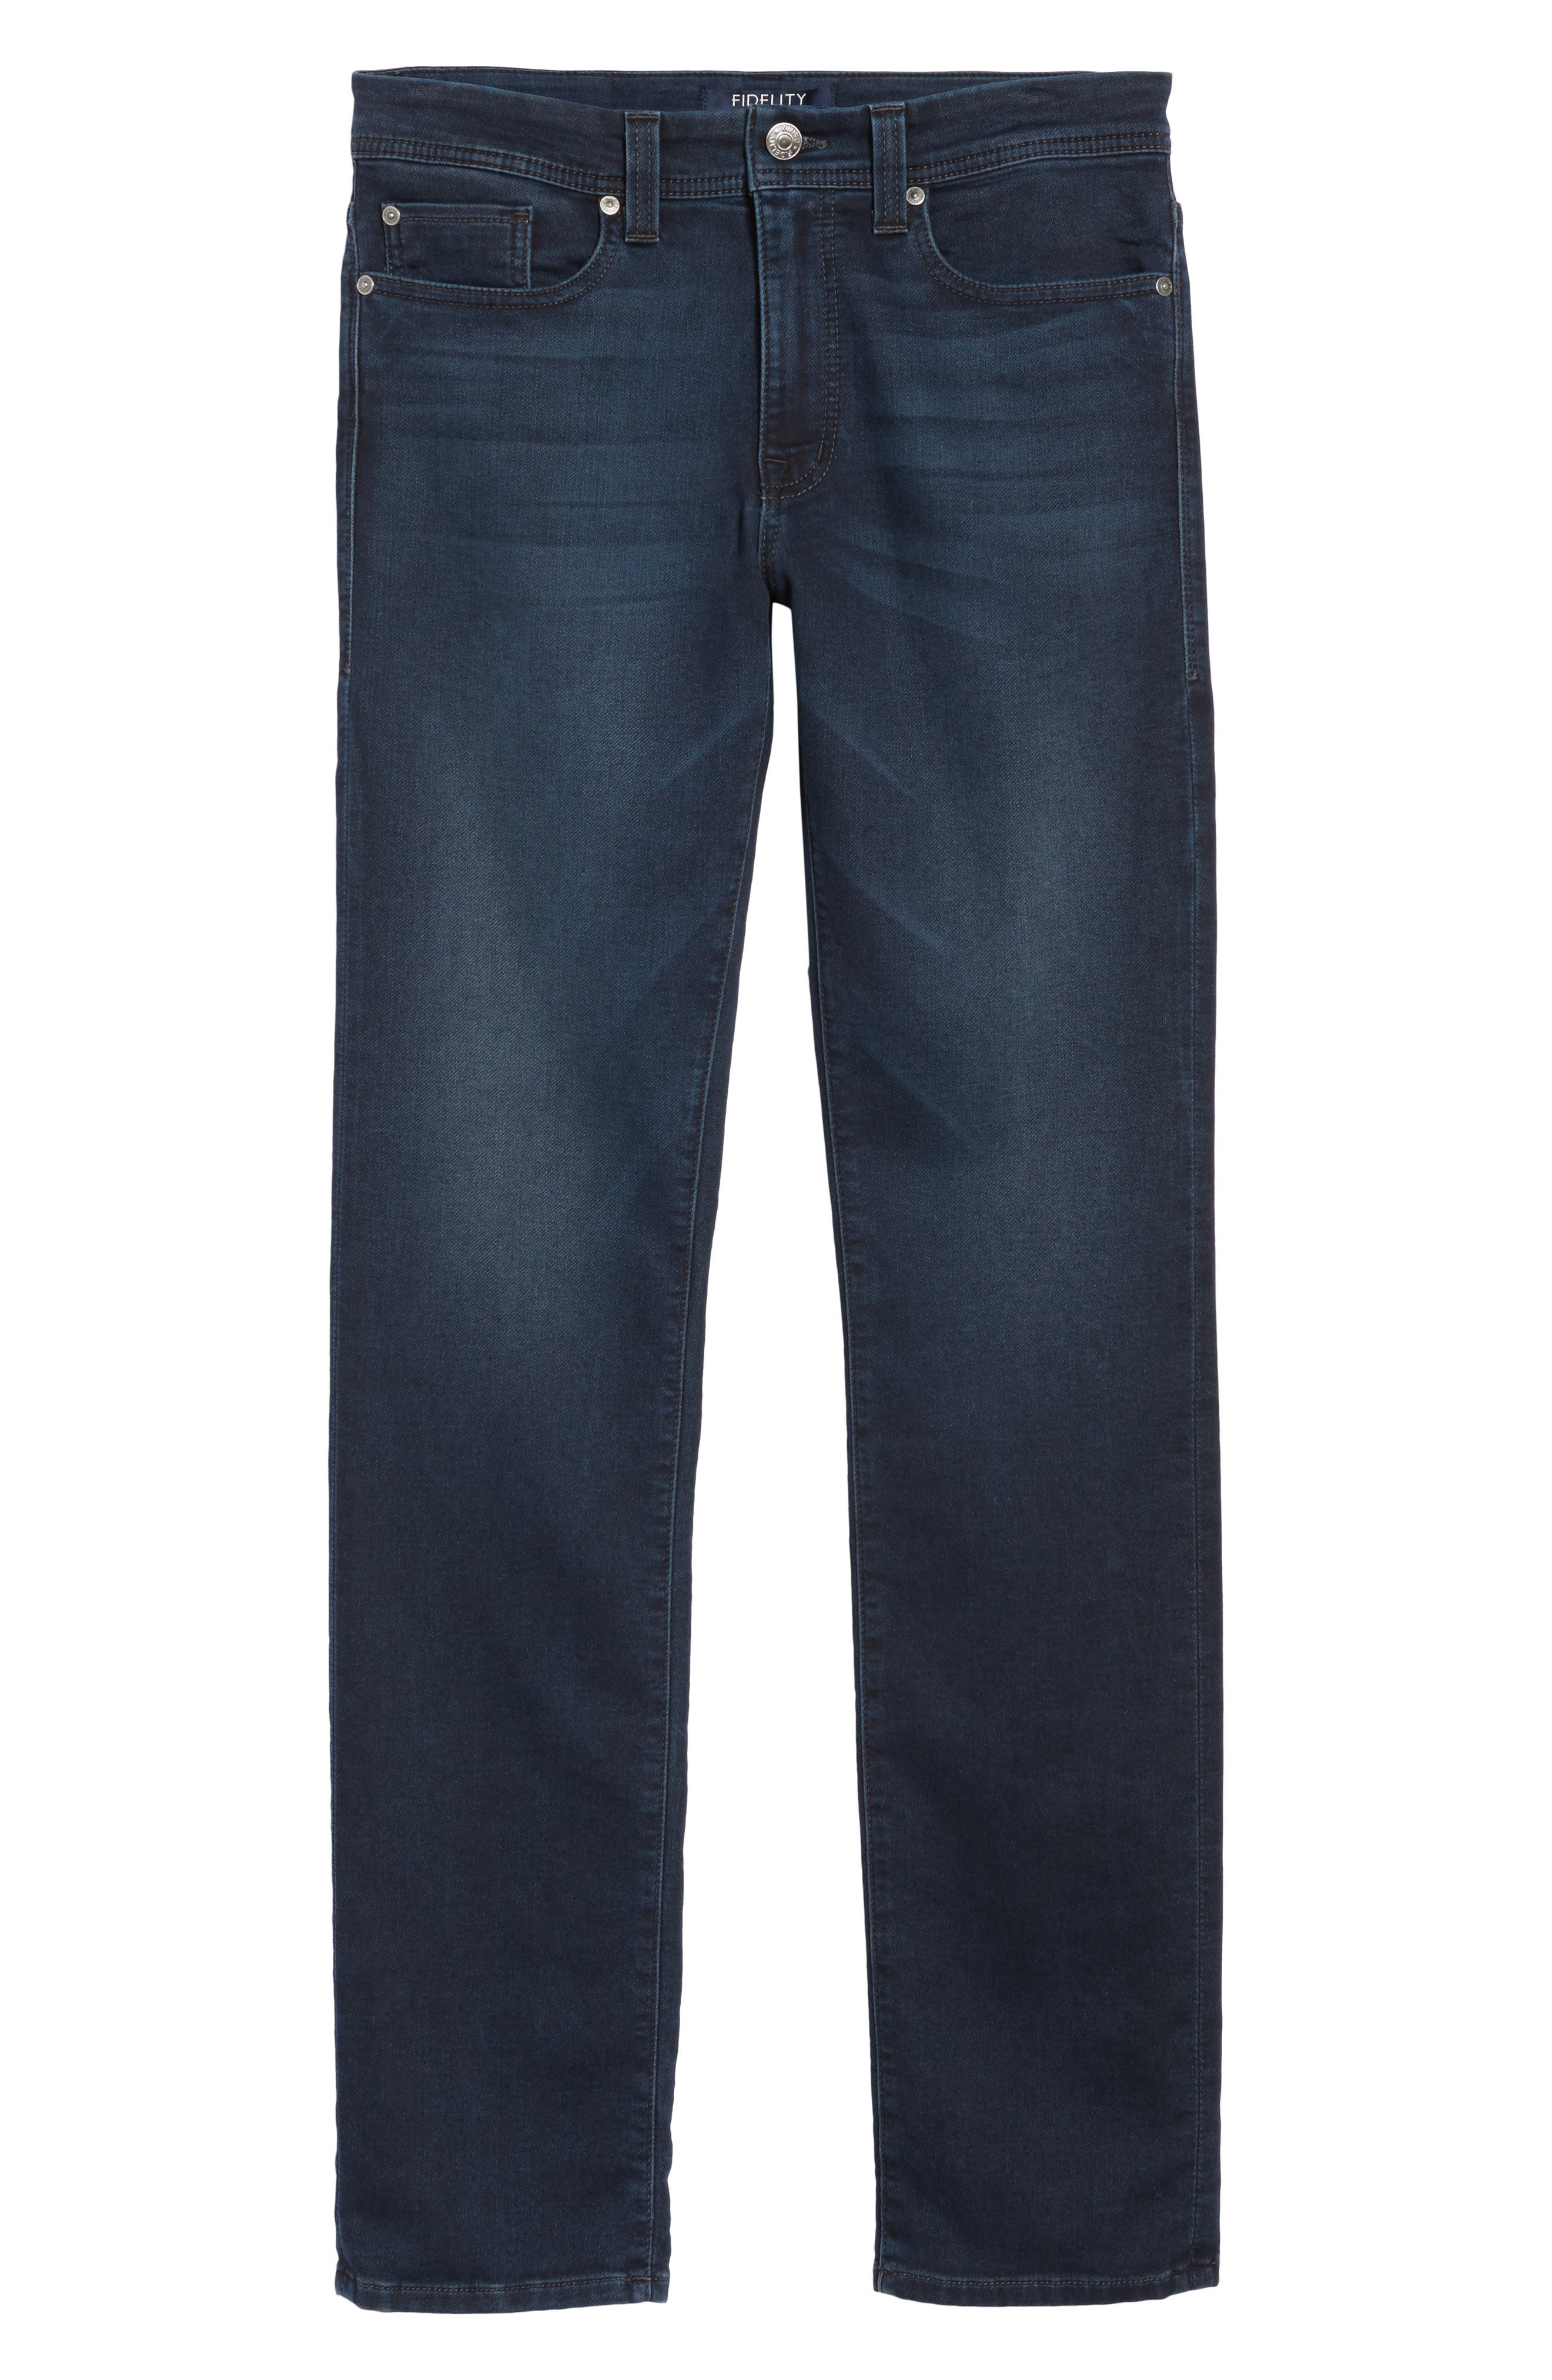 Jimmy Slim Straight Fit Jeans,                             Alternate thumbnail 6, color,                             400